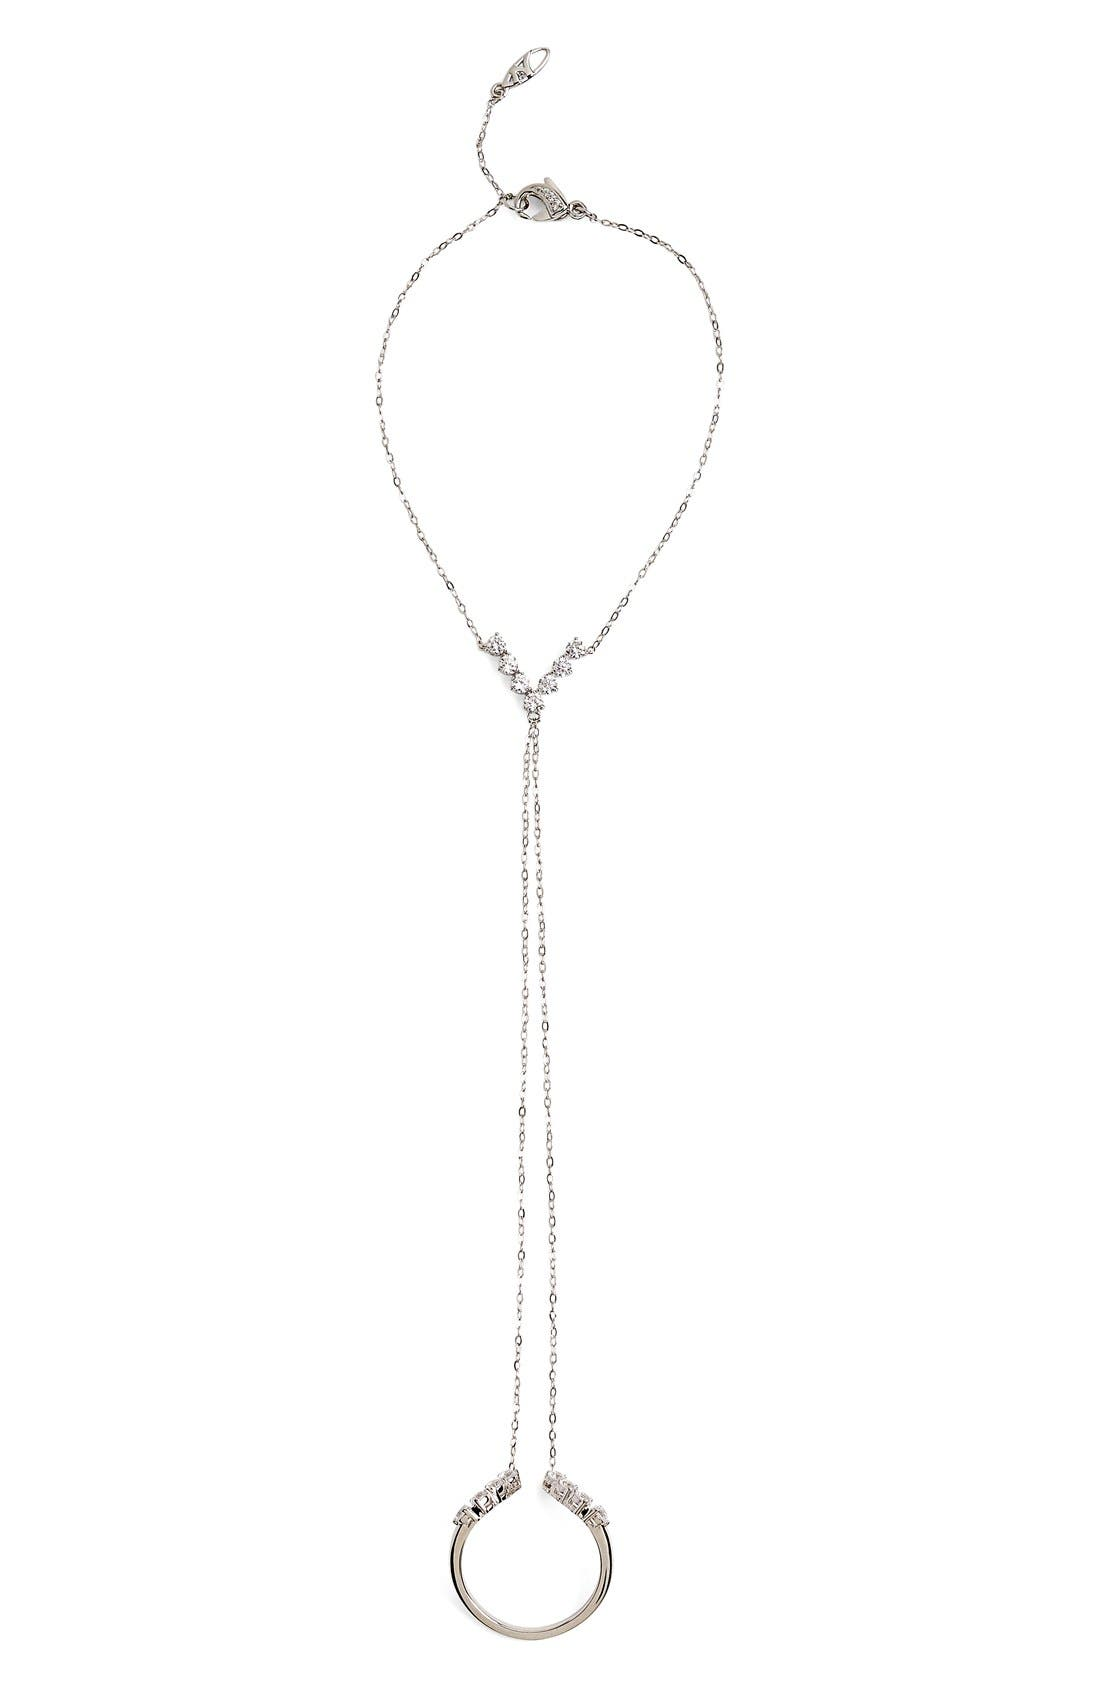 'Salome' Cubic Zirconia Hand Chain,                         Main,                         color, Silver